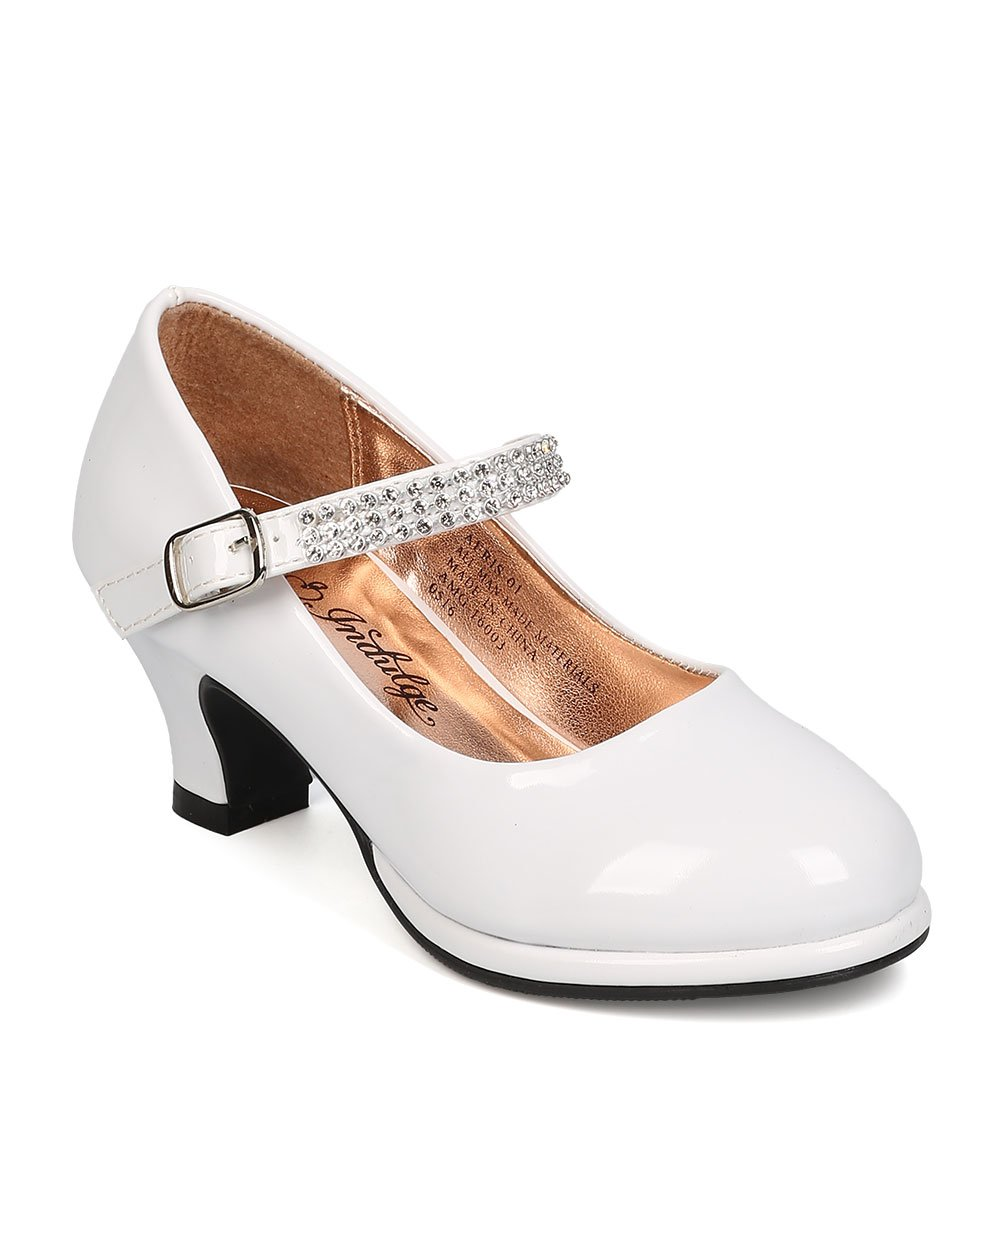 Indulge FA63 Patent Leatherette Round Toe Rhinestones Mary Jane Kiddie Heel Pump (Toddler Girl/Little Girl/Big Girl) - White (Size: Little Kid 11)